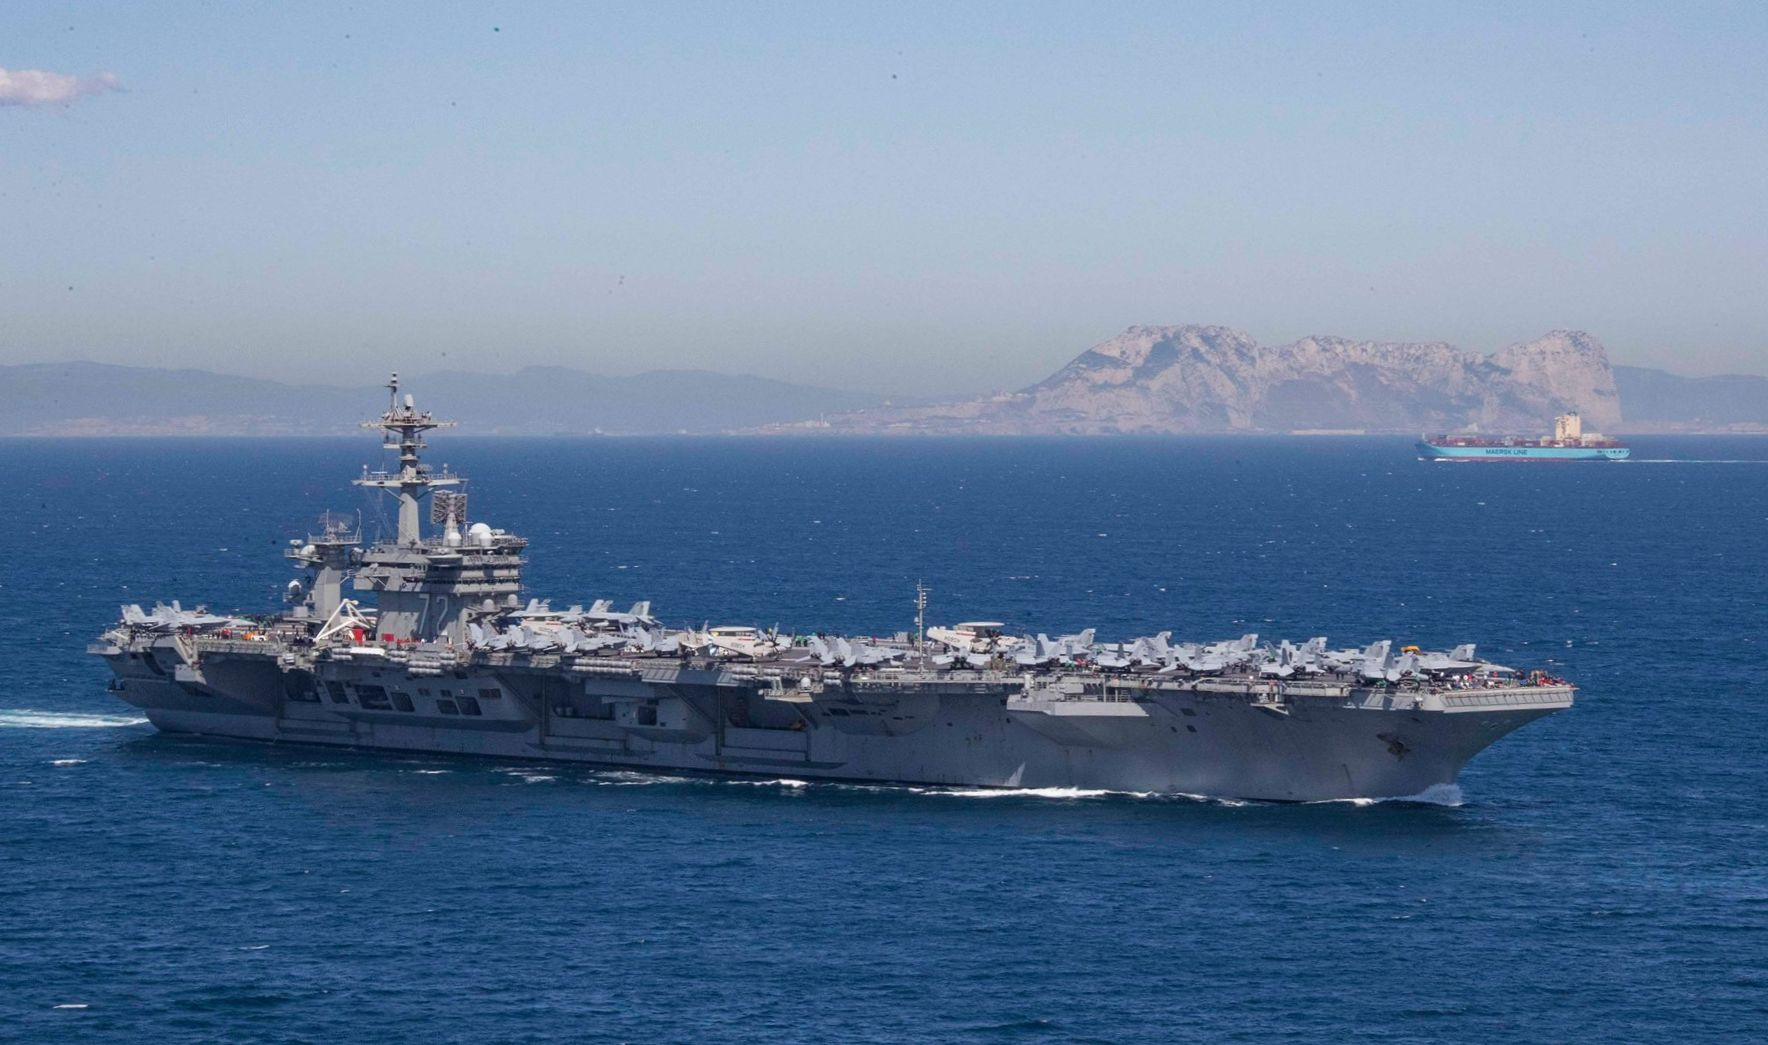 The Nimitz-class aircraft carrier USS Abraham Lincoln transits the Strait of Gibraltar, entering the Mediterranean Sea